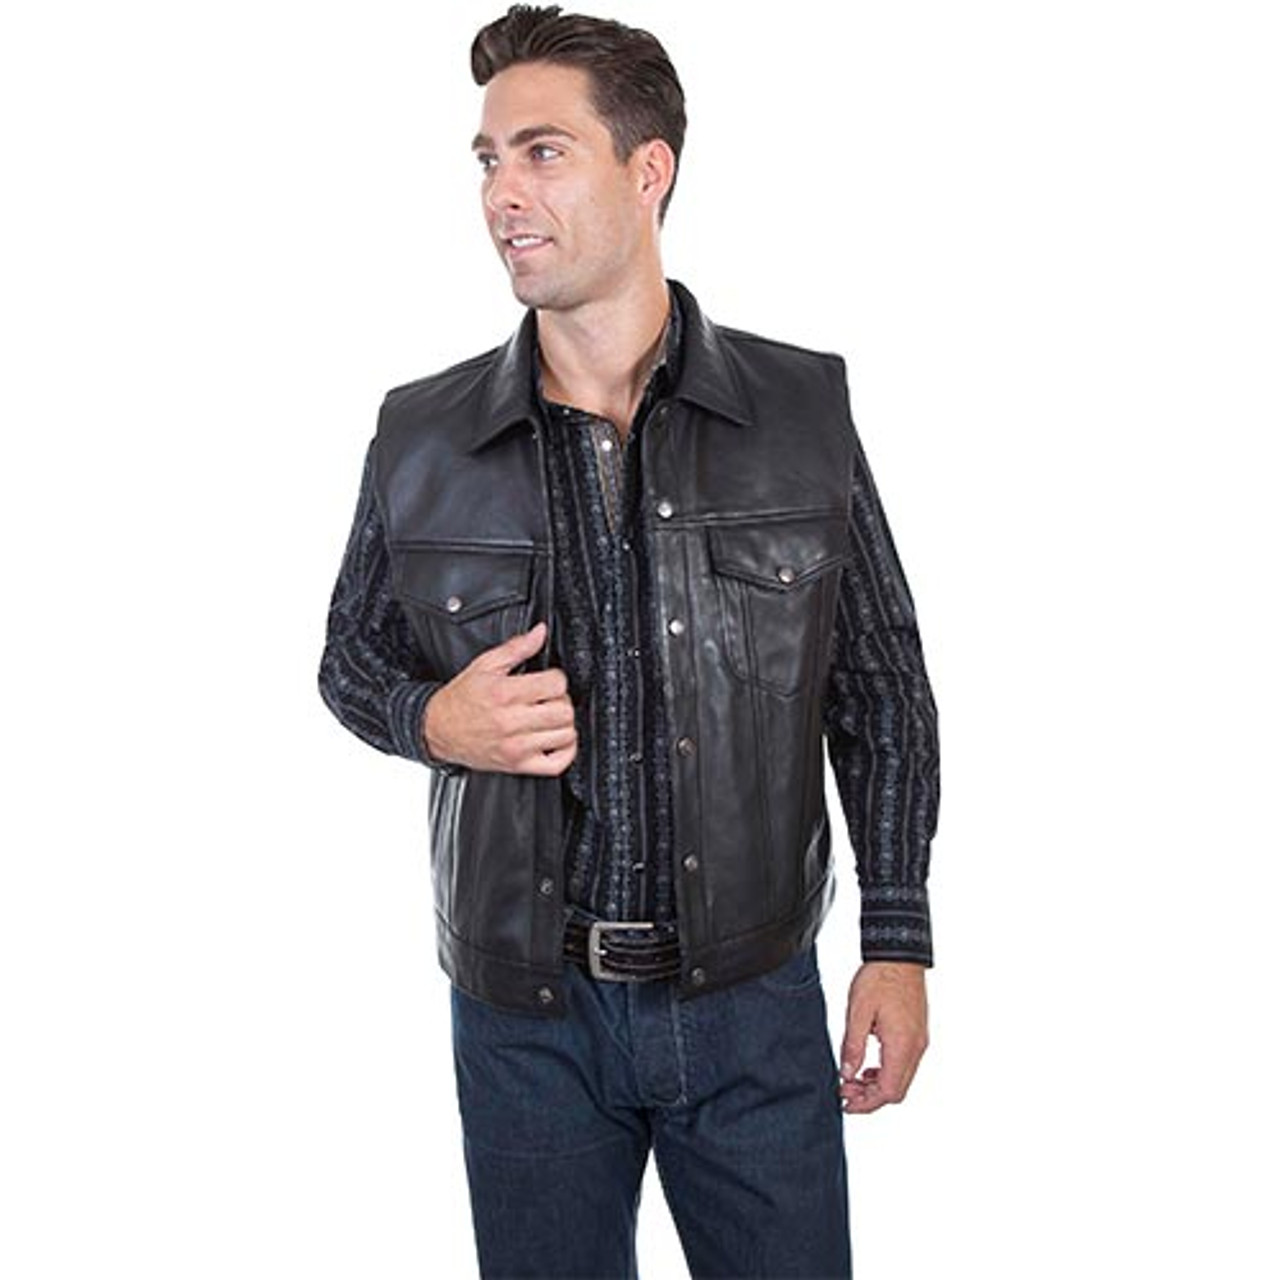 3dcd46a28 Scully Mens Jackets - Lamb Concealed Carry Vest - Black